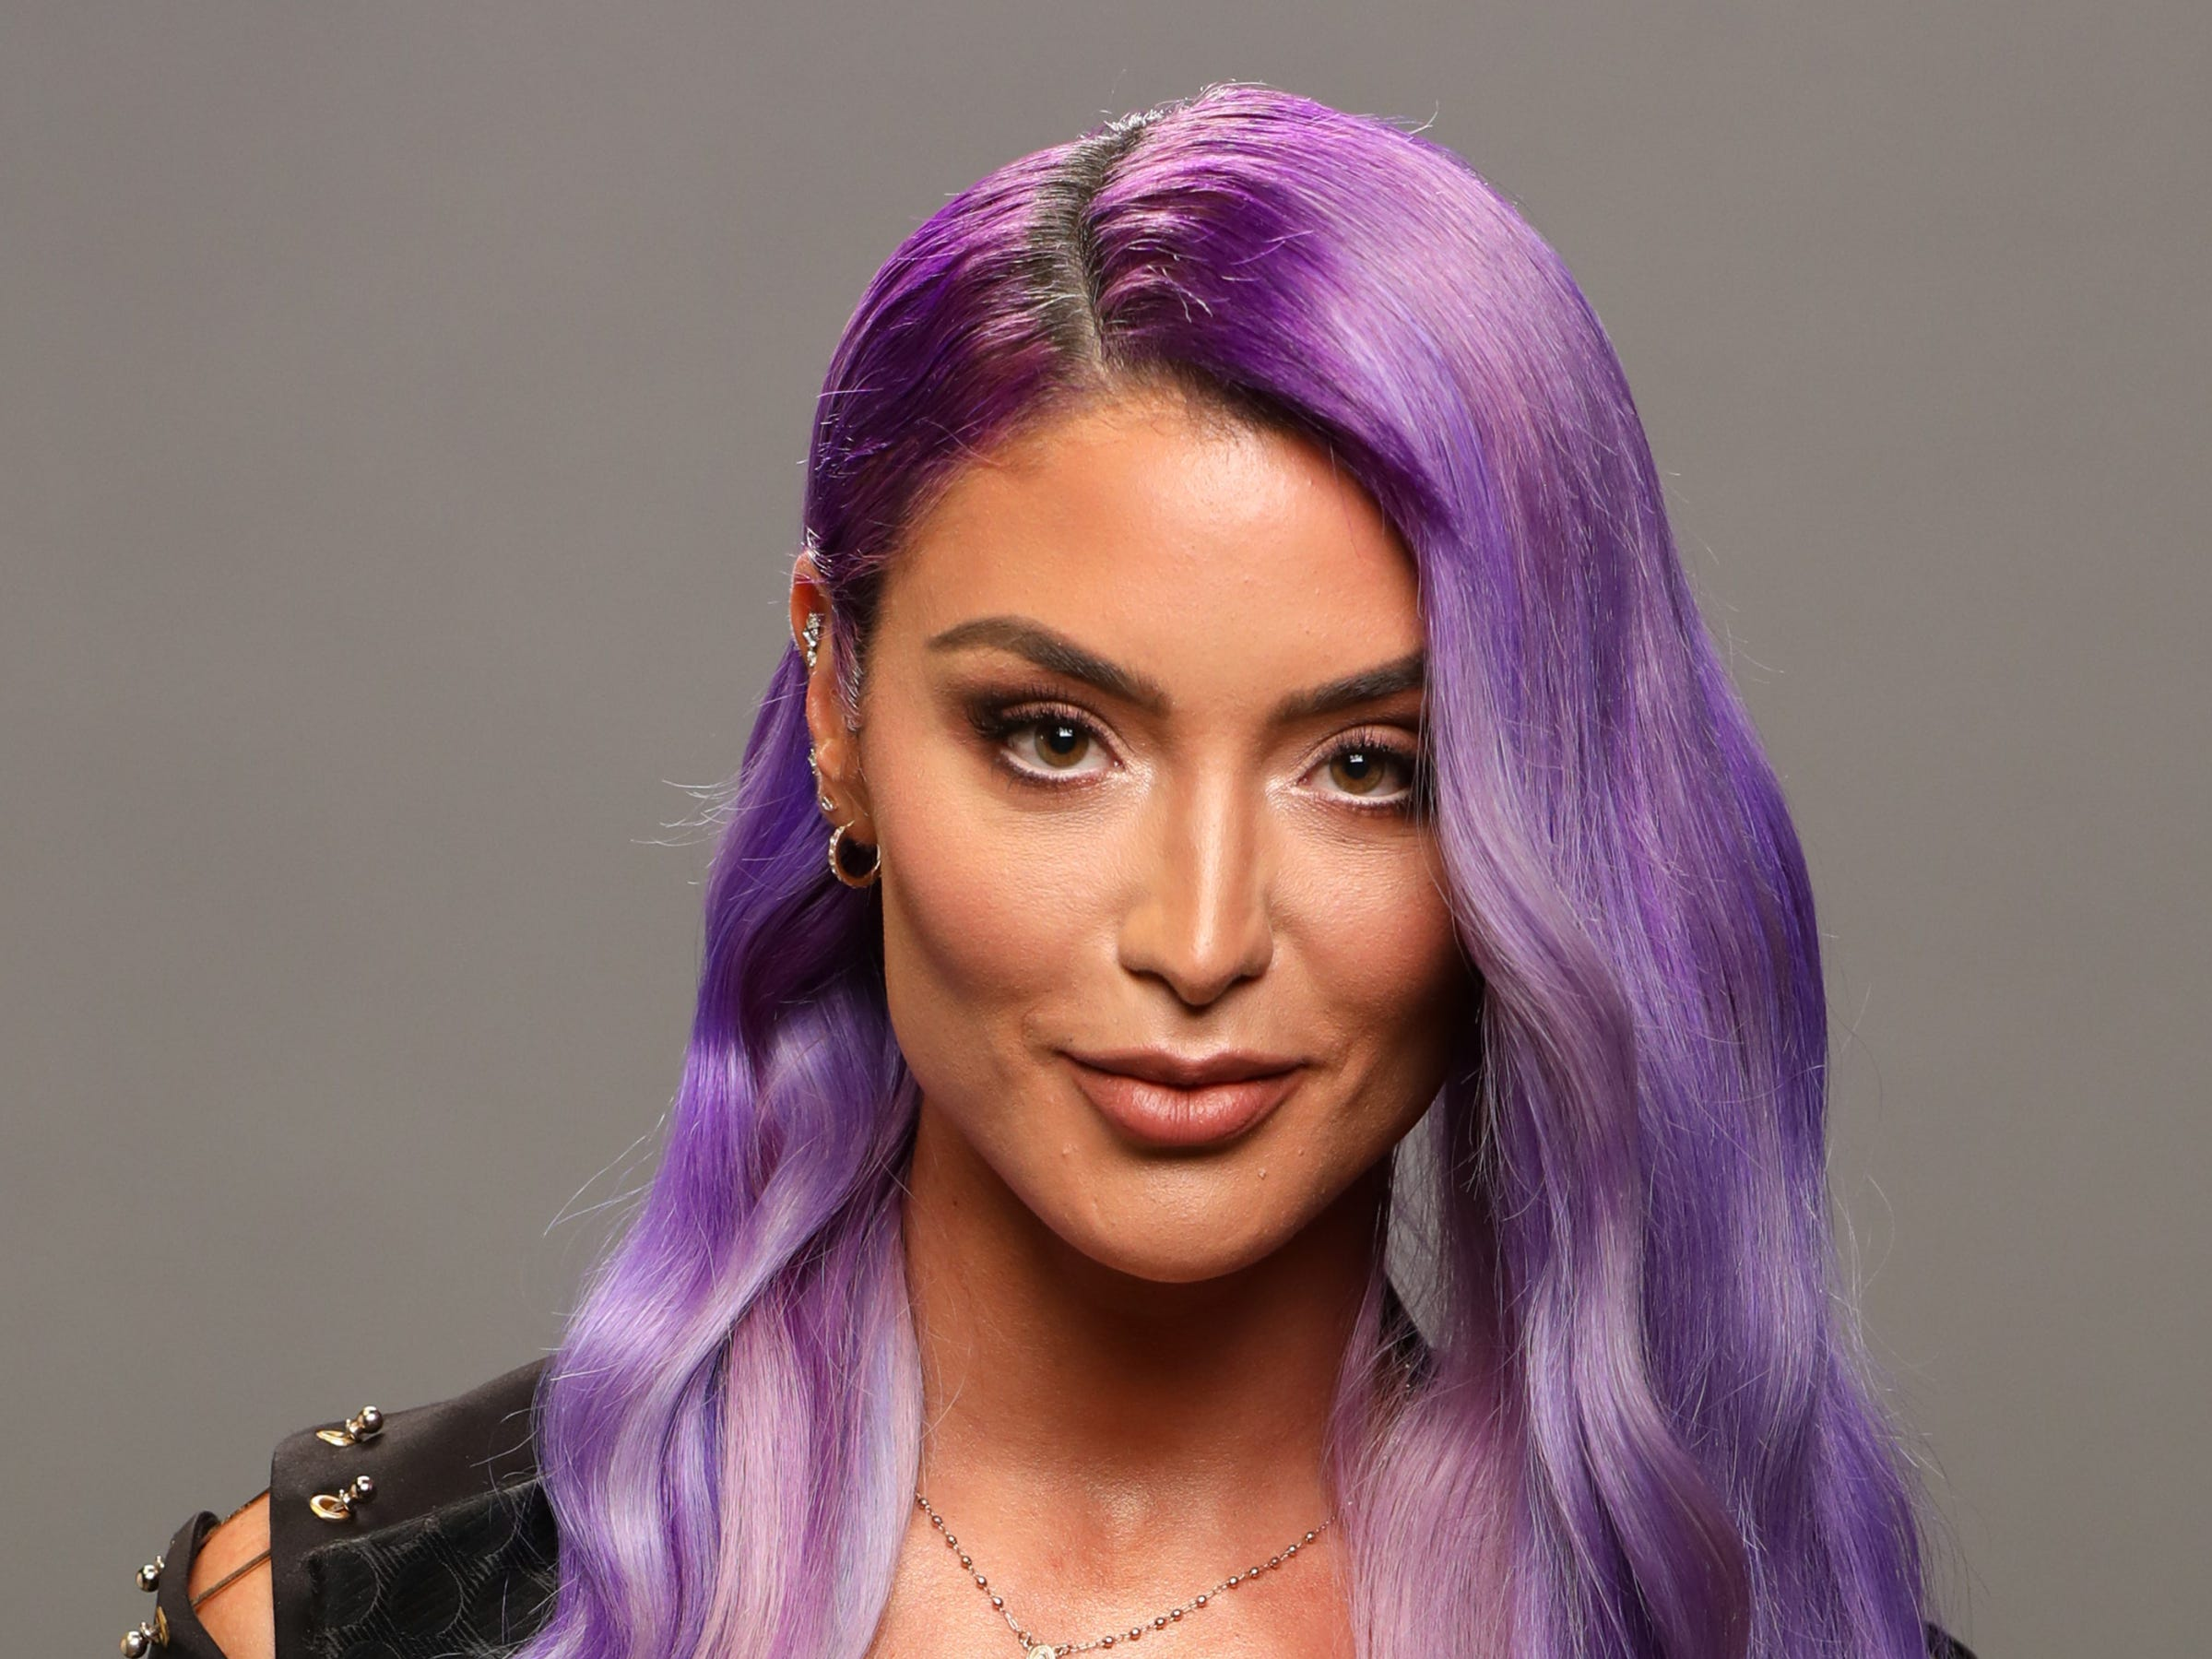 Natalie Eva Marie to participate in the second season of BIG BROTHER: CELEBRITY EDITION. BIG BROTHER: CELEBRITY EDITION launches with a two-night premiere event Monday, Jan. 21 (8:00-9:00 PM, ET/PT) and Tuesday, Jan. 22 (8:00-9:00 PM, ET/PT) on the CBS Television Network.   Photo: Monty Brinton/CBS  ©2019 CBS Broadcasting, Inc. All Rights Reserved